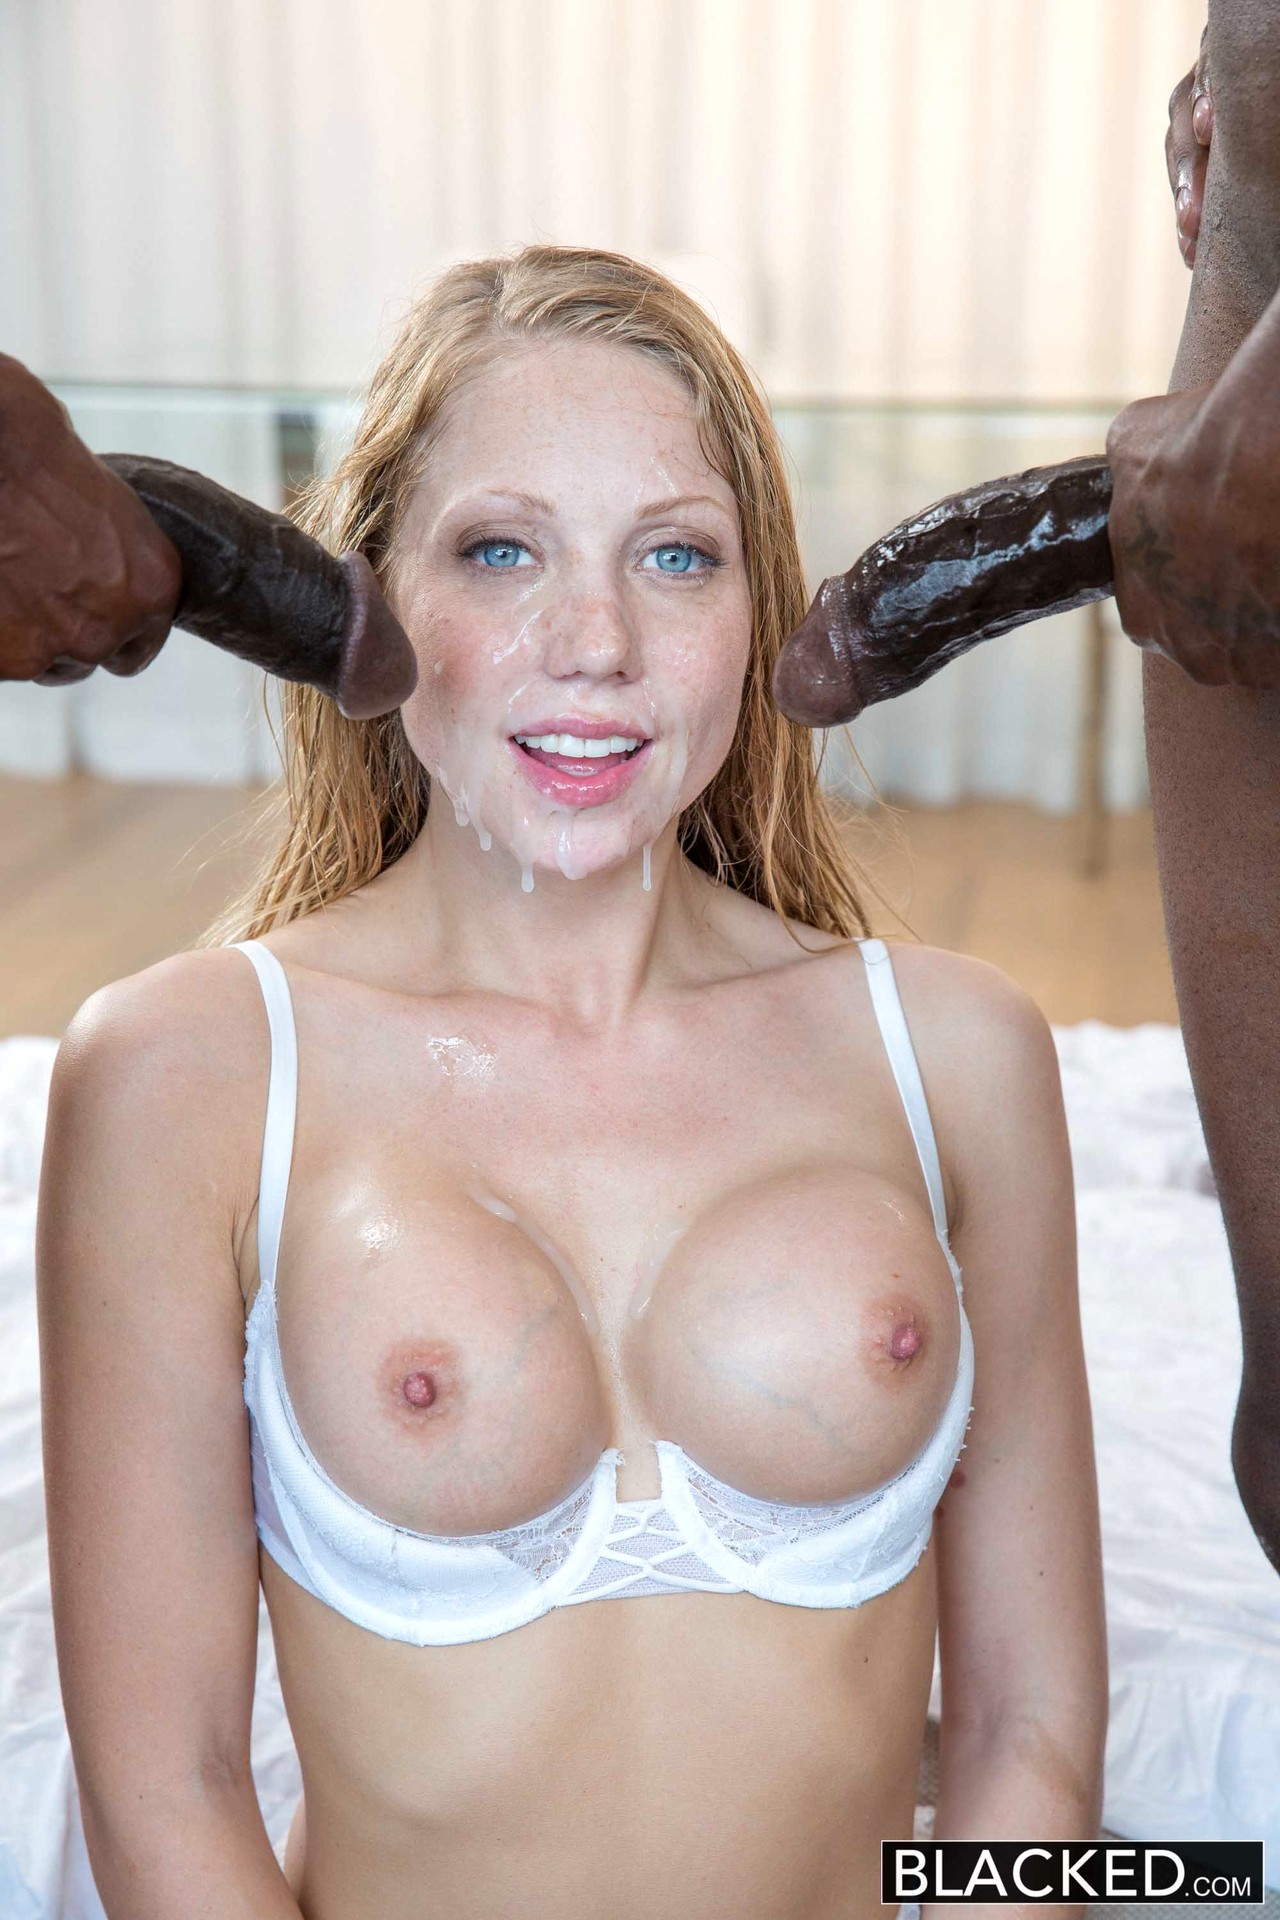 Riley nixon sucks black cock for money gloryhole - 1 5